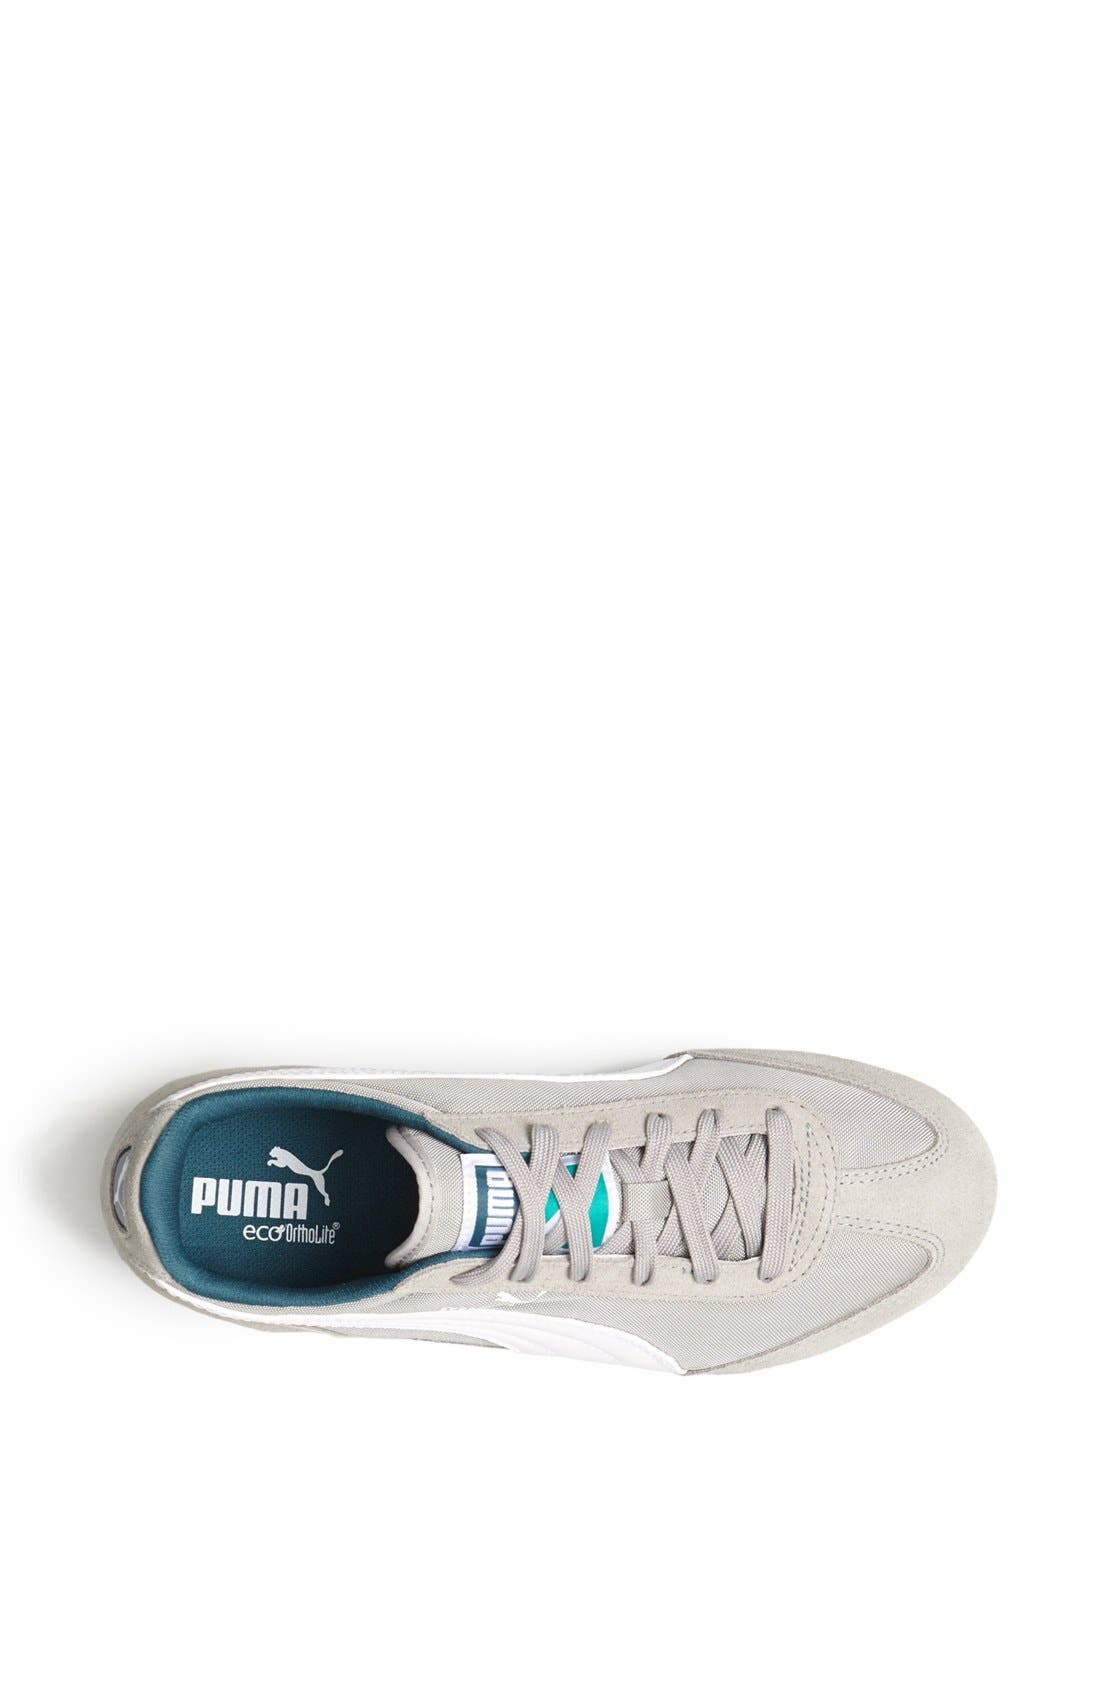 Alternate Image 3  - PUMA 'SF 77' Platform Sneaker